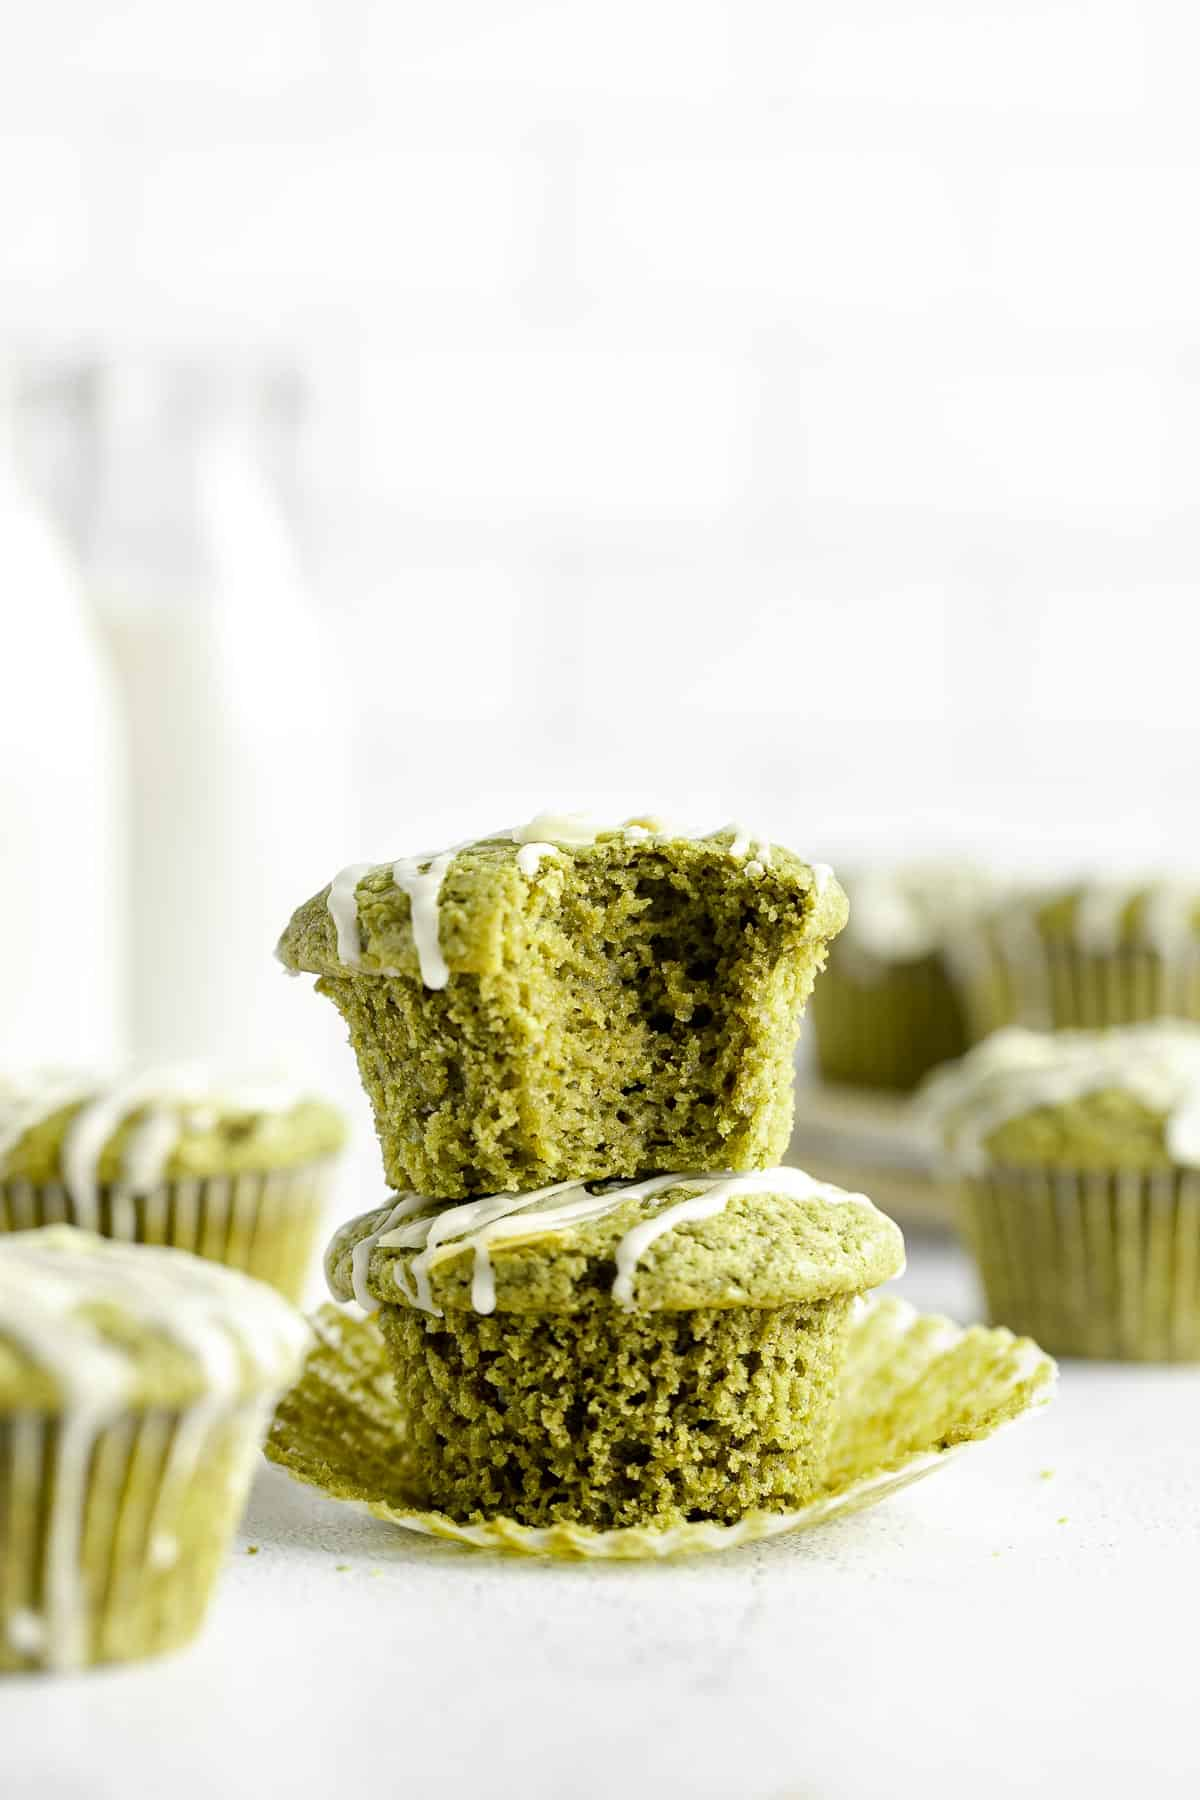 two matcha muffins stacked on each other with a bite taken out